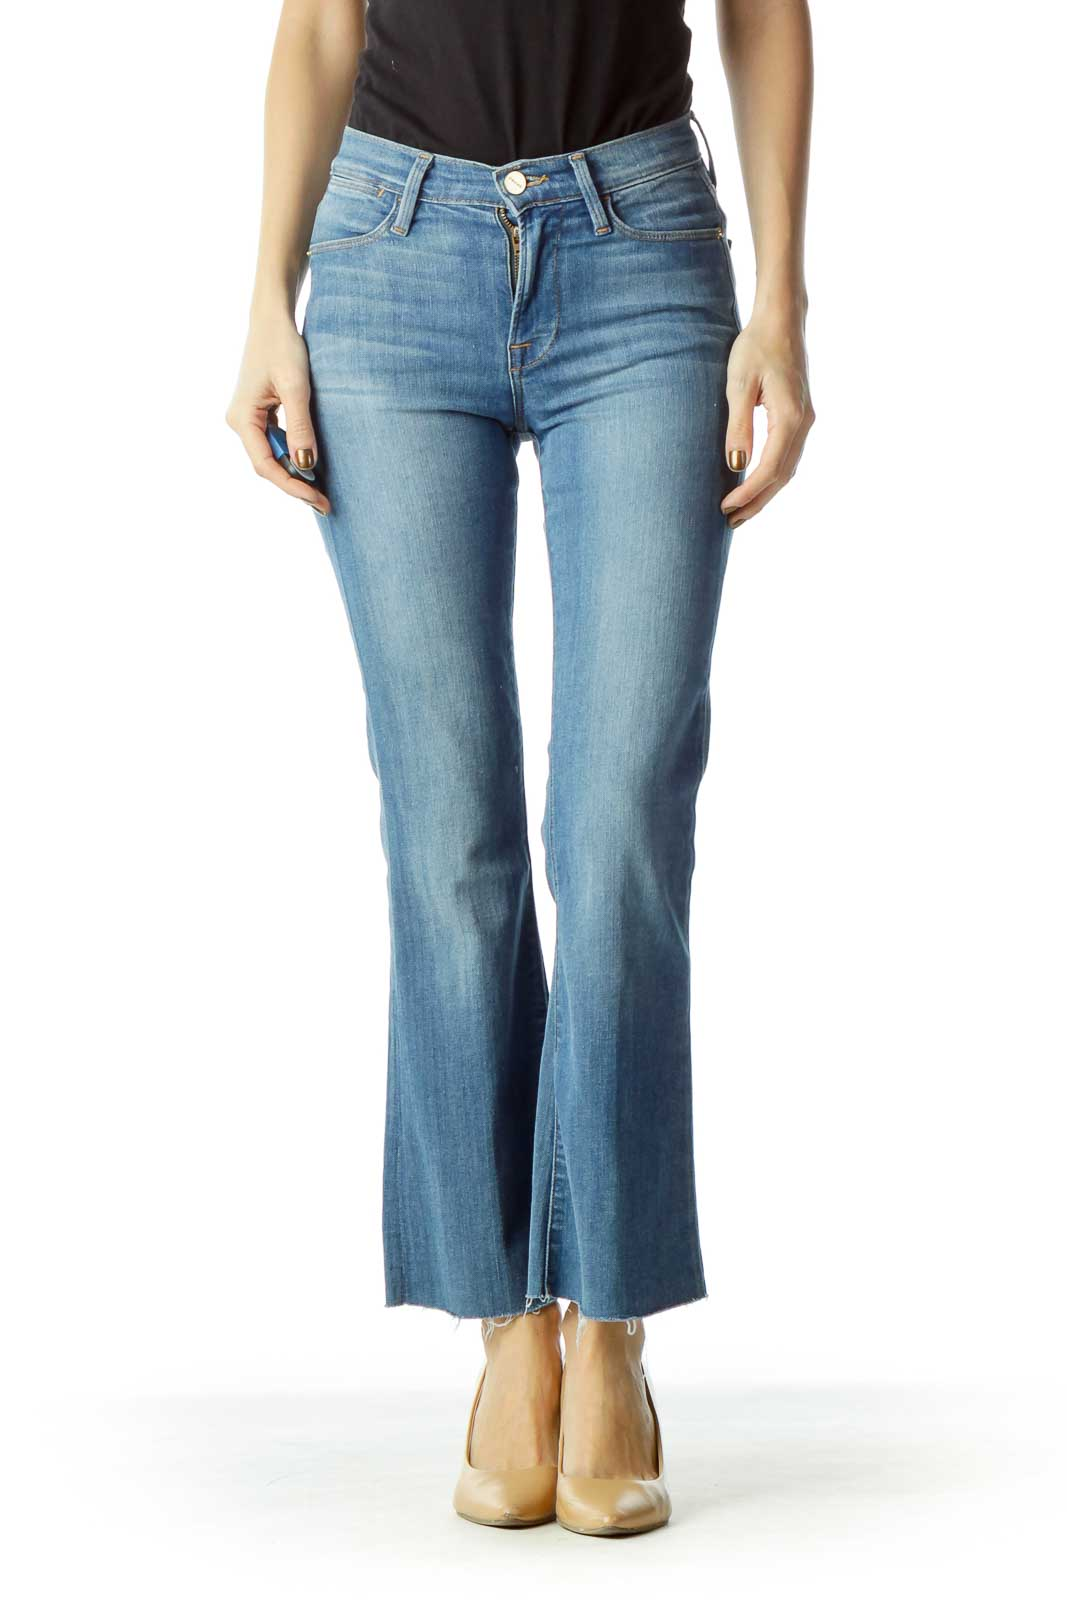 Blue High-Waisted Flared Jeans Front